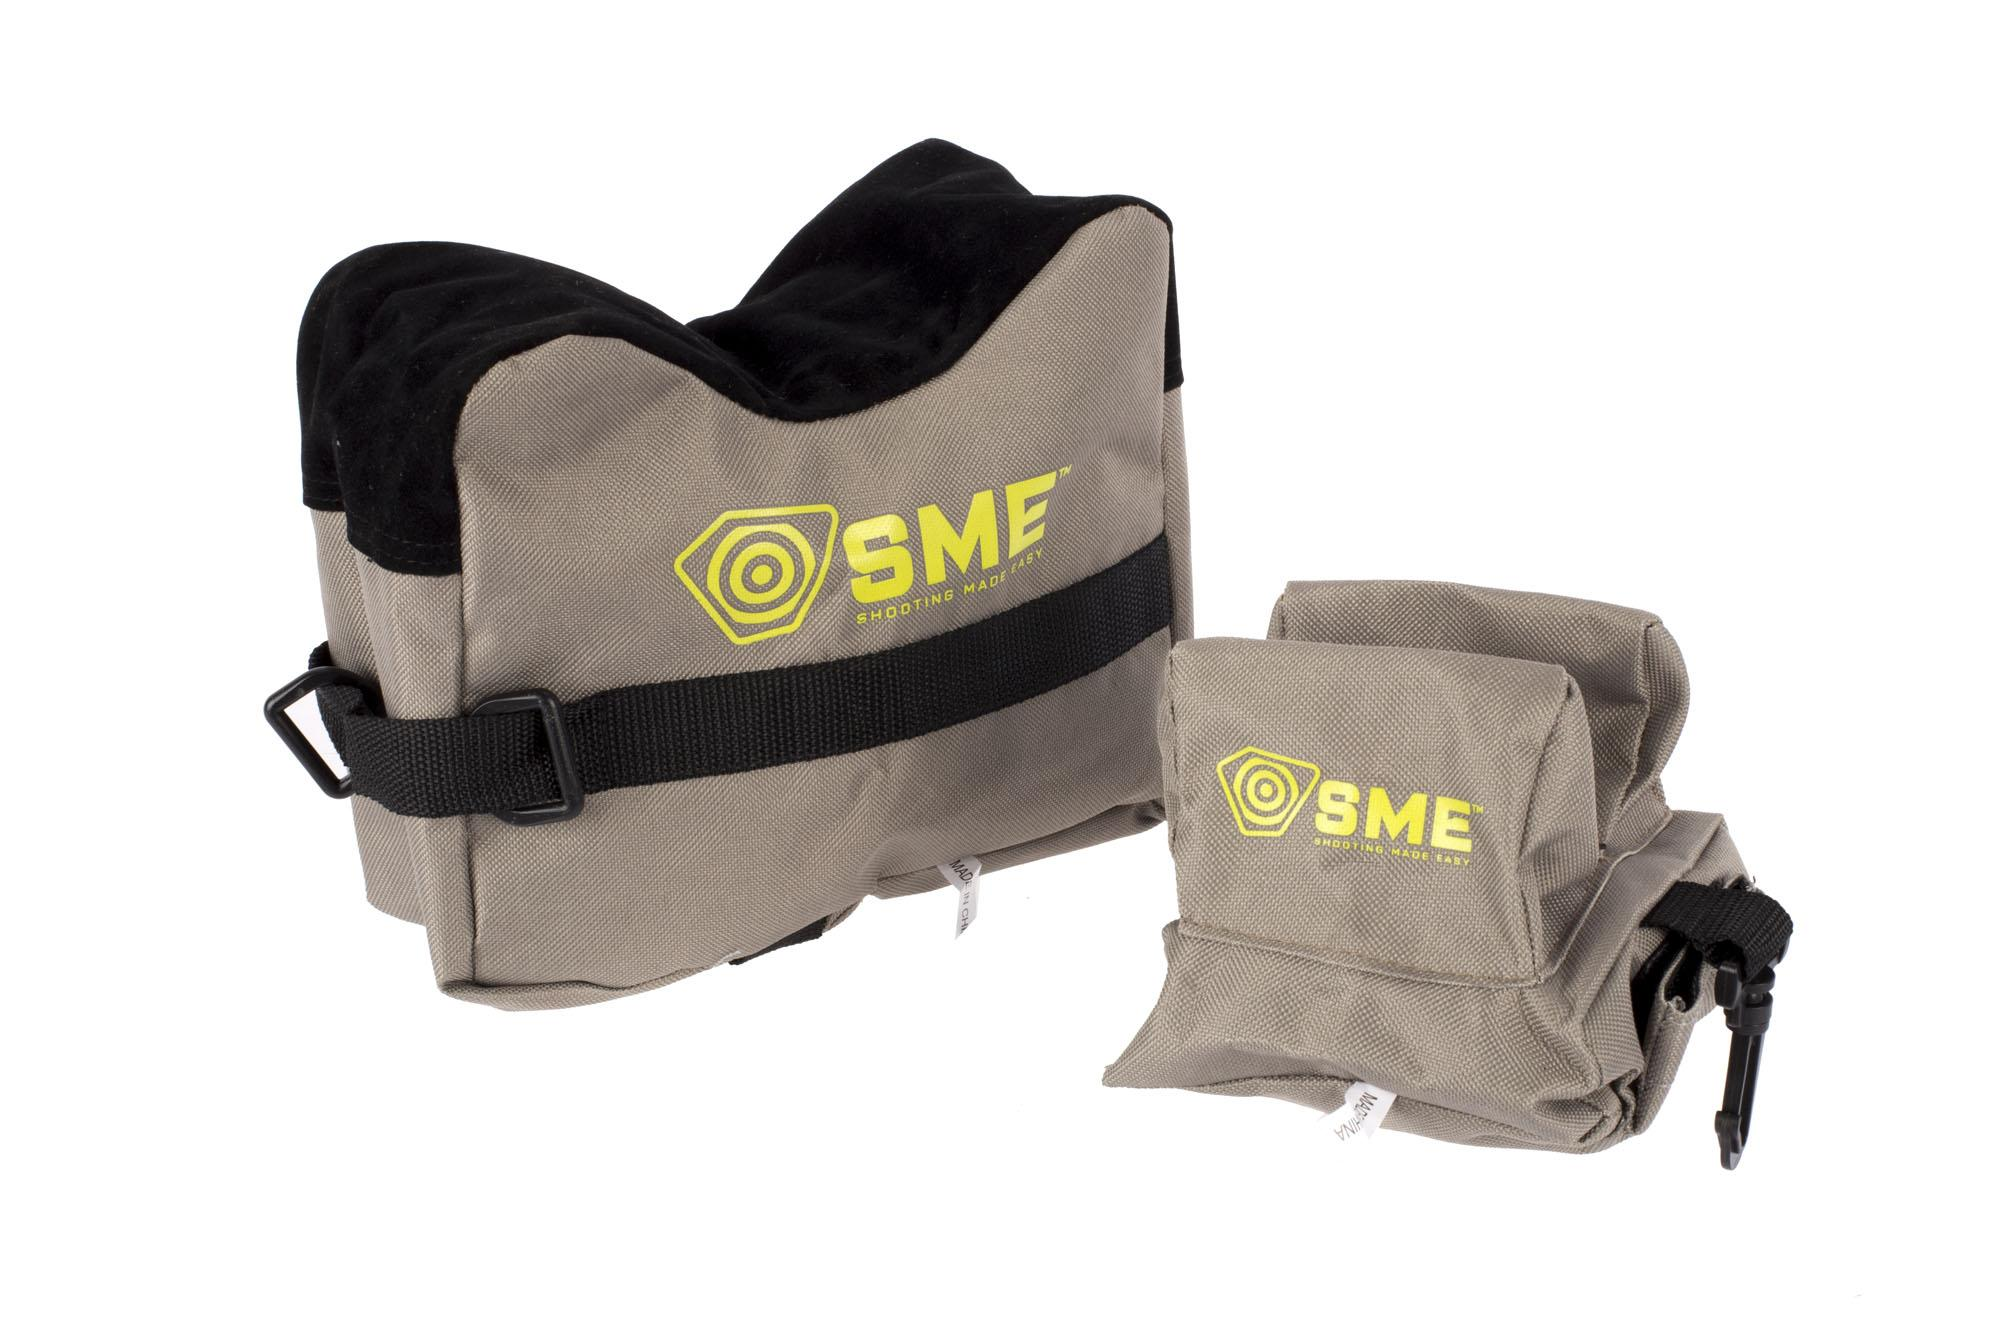 SME 2-Piece Shooting Bags - Unfilled Shooting Rests